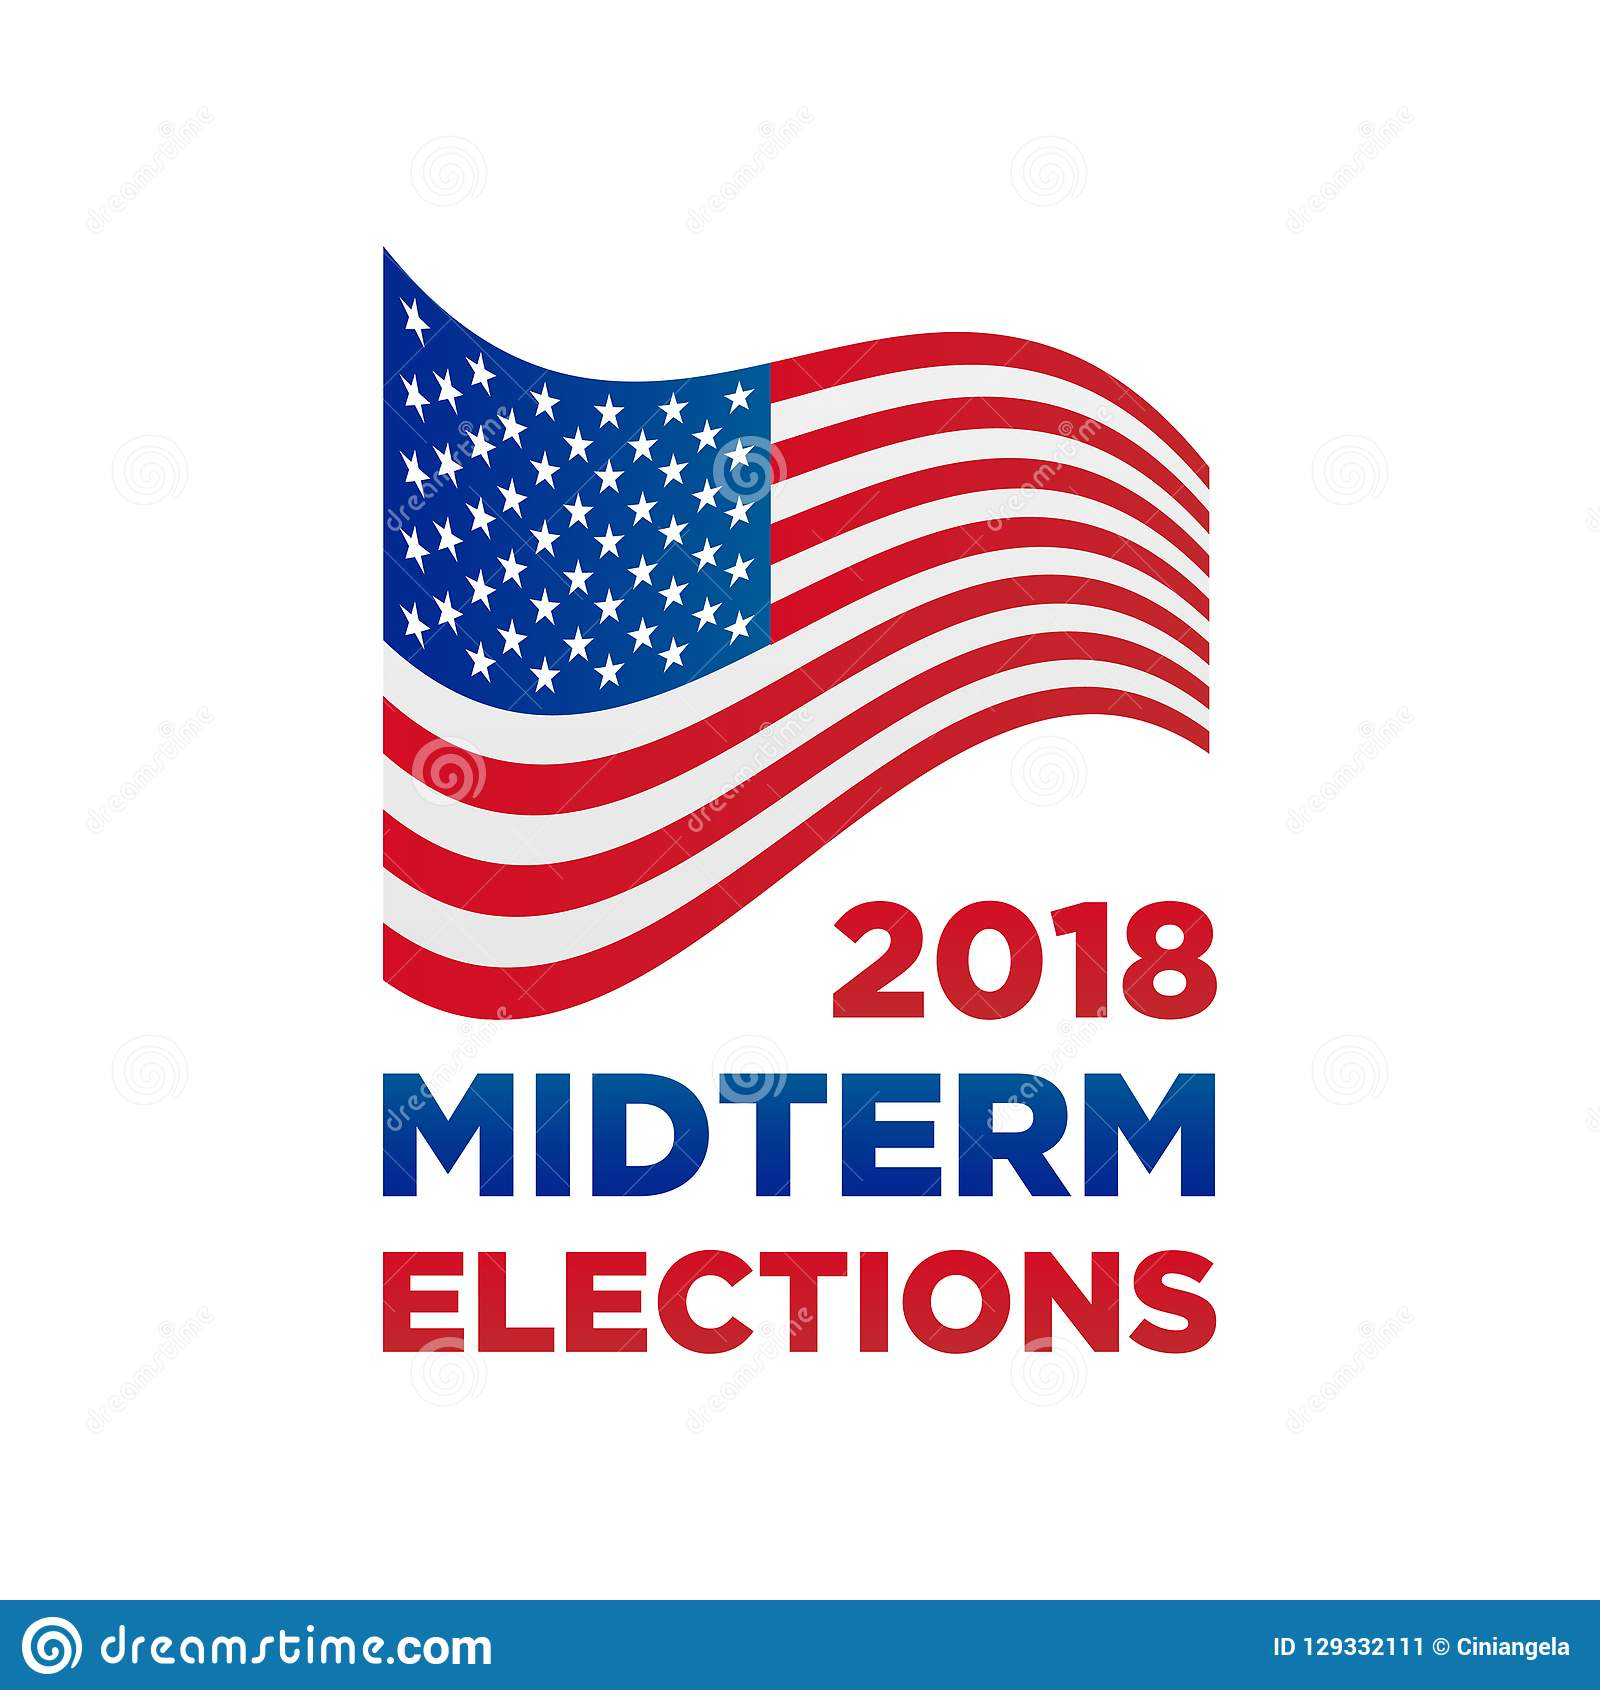 2018 midterm congressional elections vector